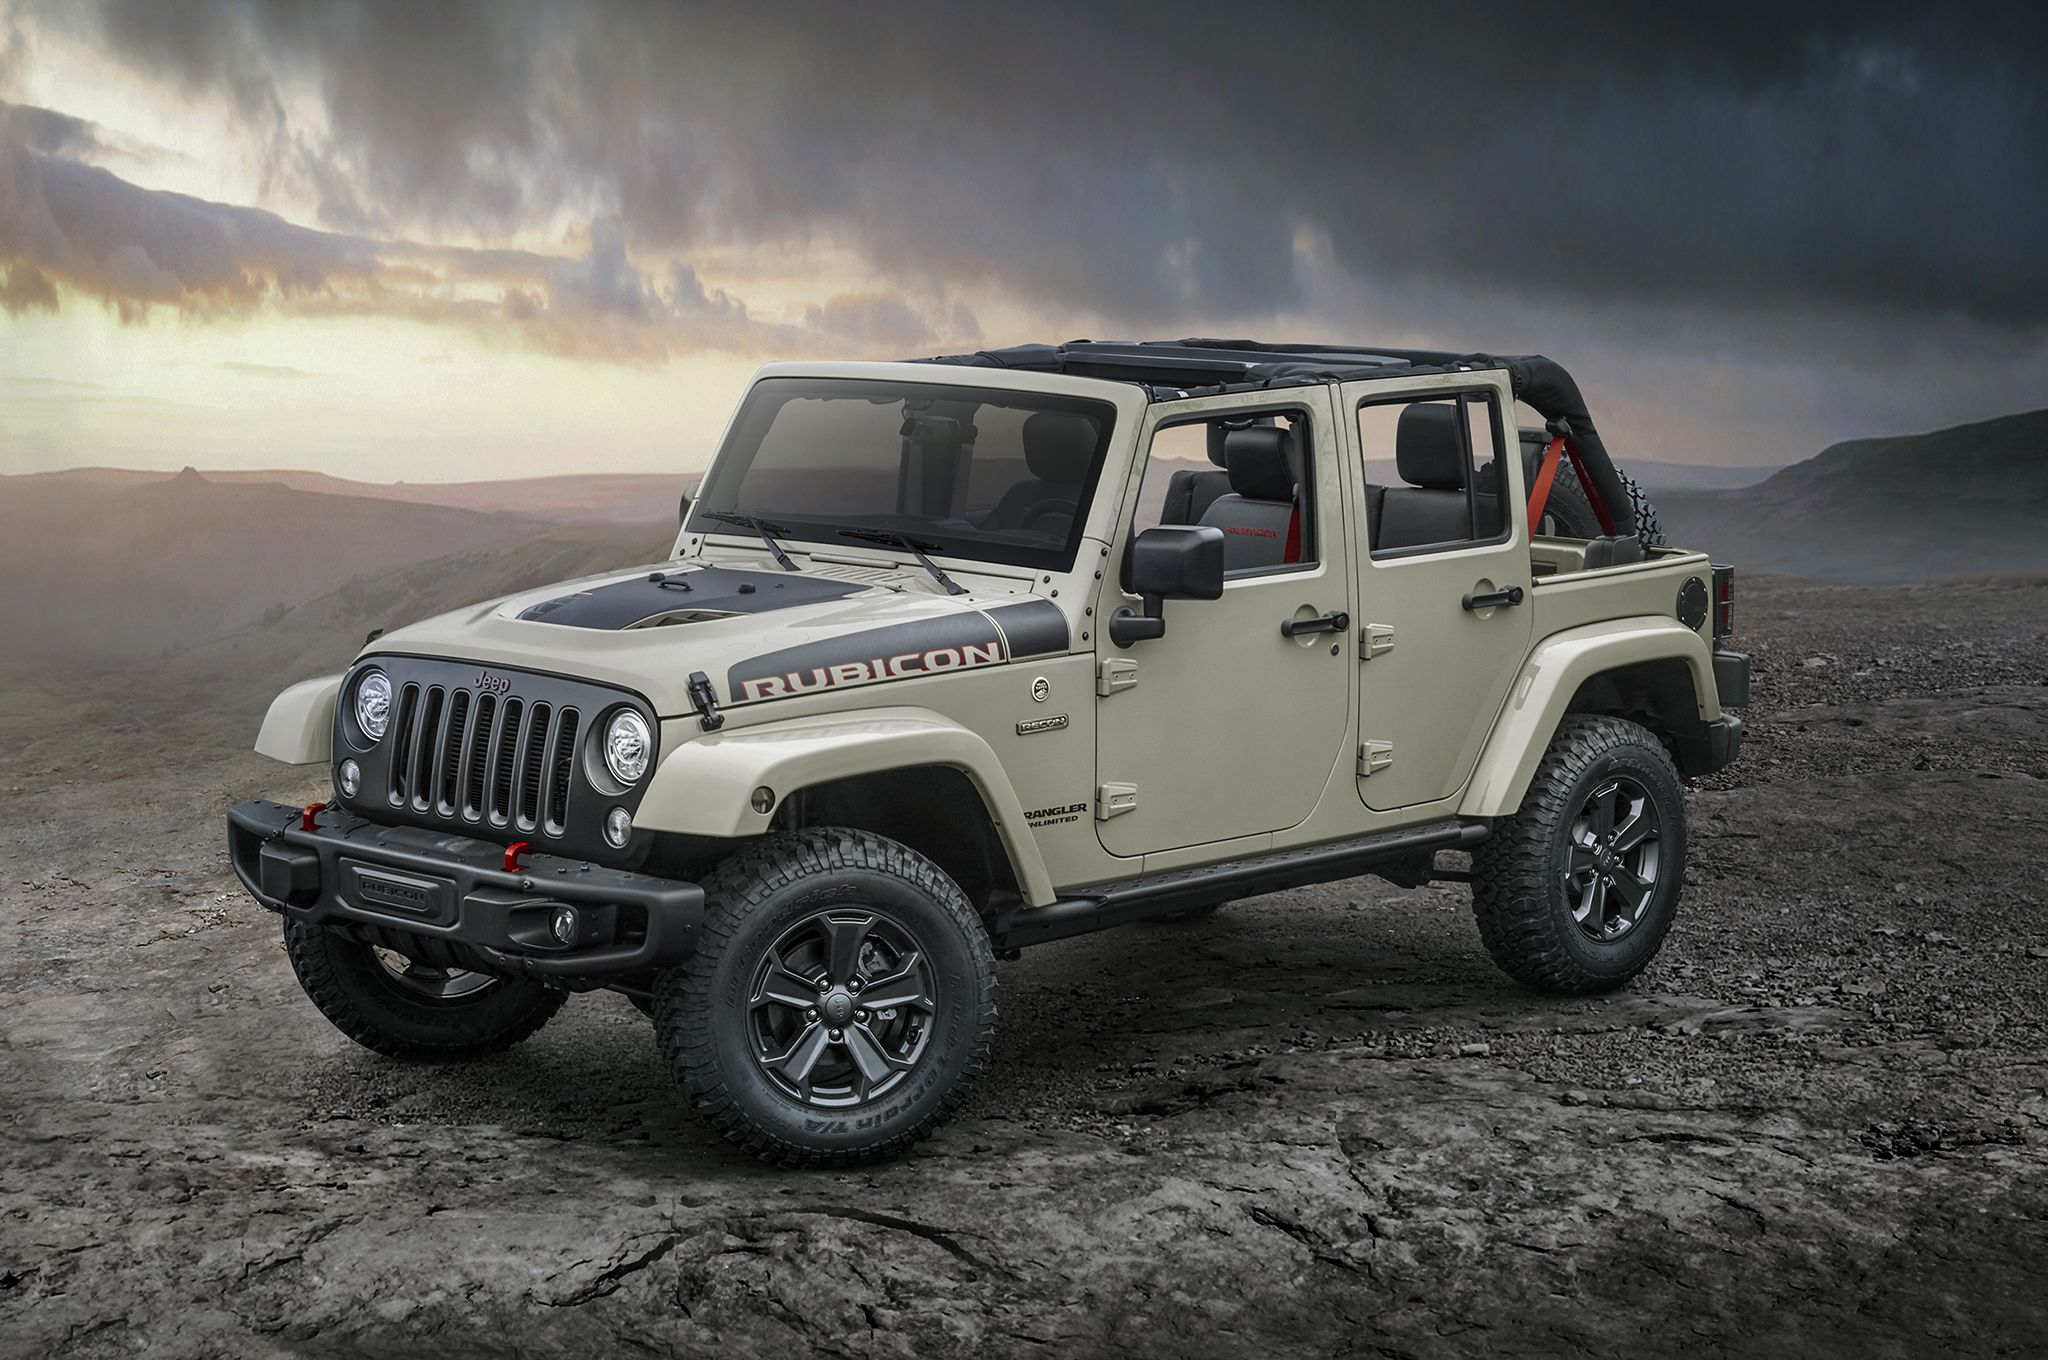 2017 jeep wrangler rubicon recon is the most off road ready jk wrangler yet